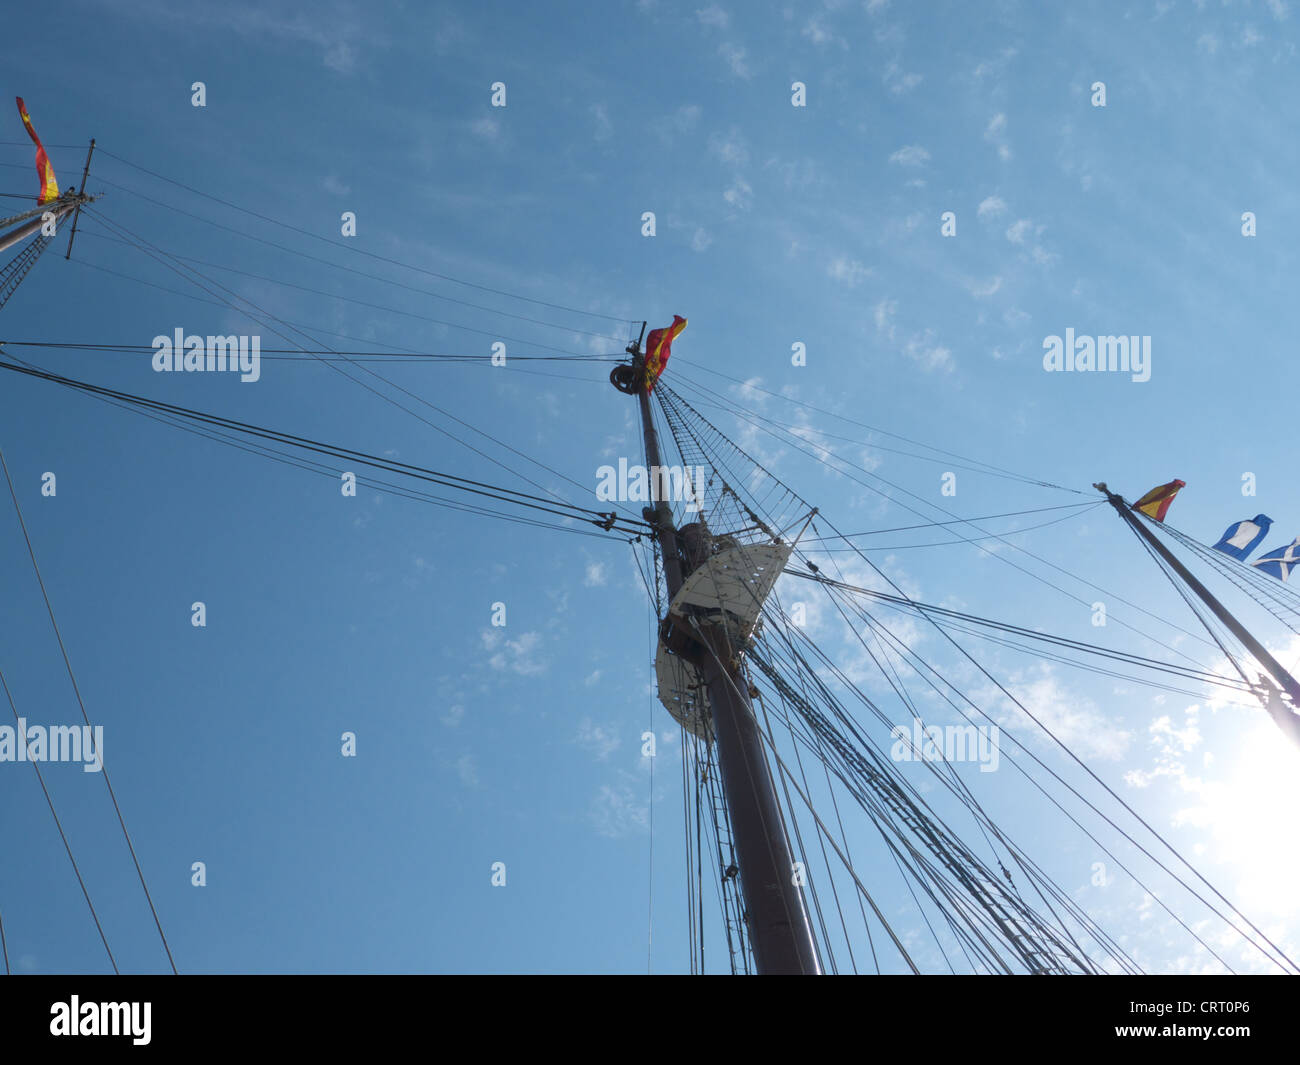 Low angle of the mast and rigging of a tall ship, OpSail / Fleet Week, Brooklyn, New York, 2012 - Stock Image